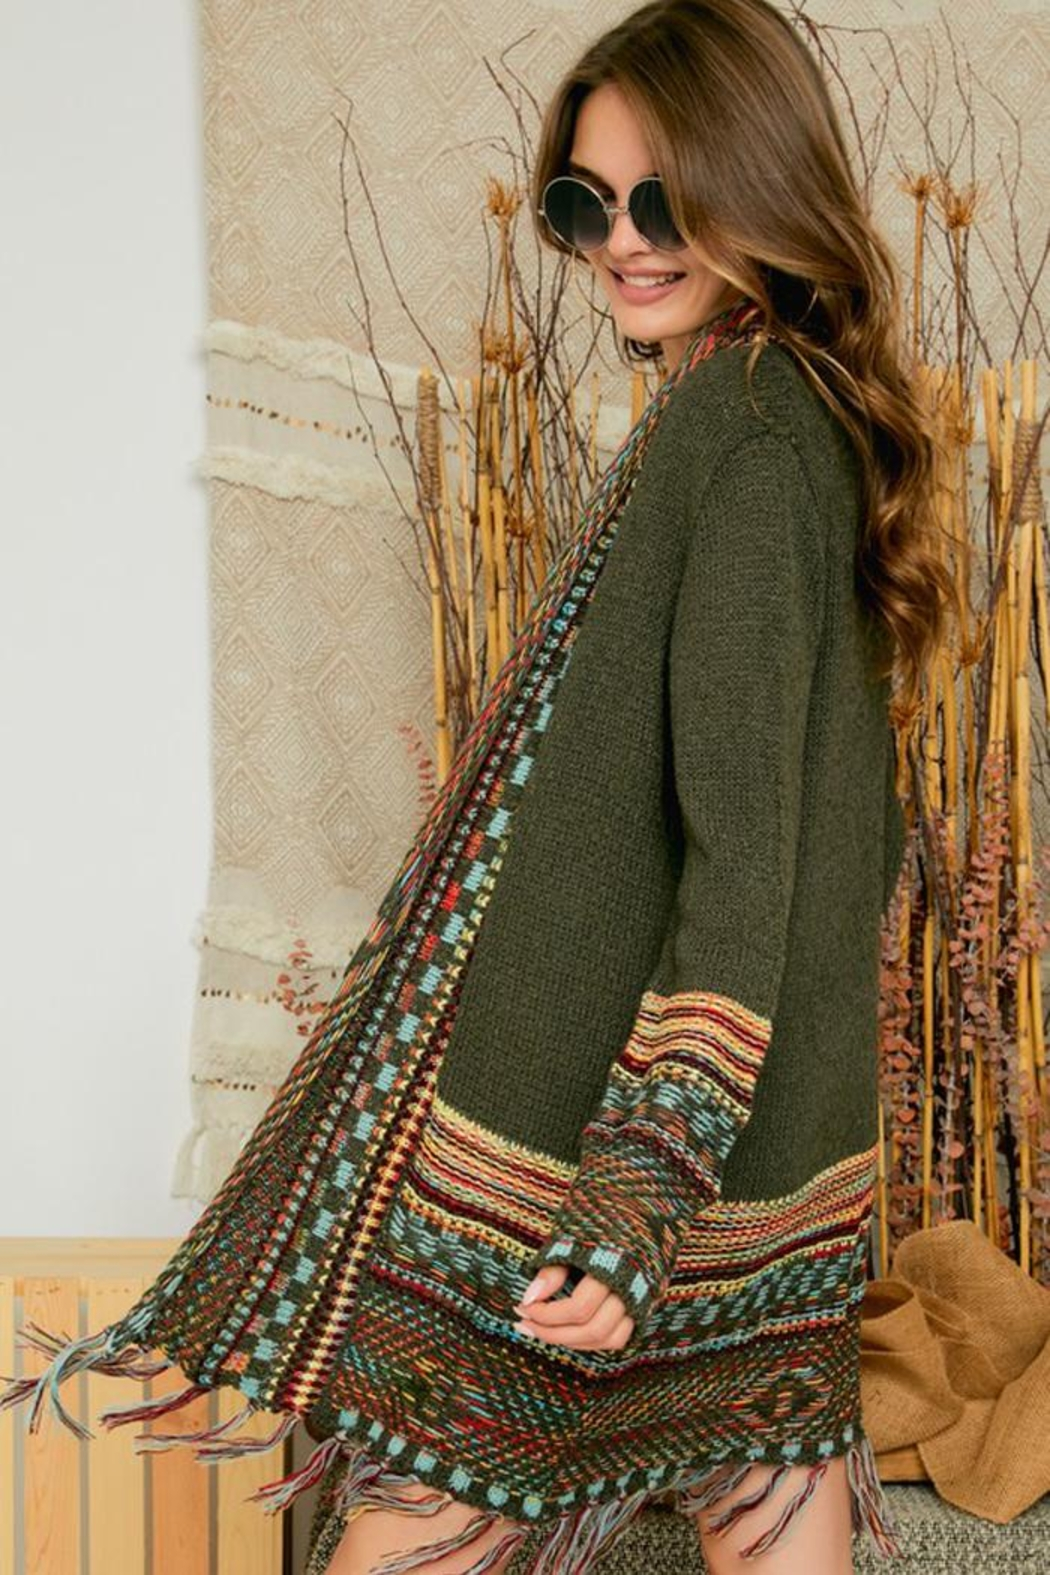 Adora Aztec Tribal Patterned Sweater Knit Cardigan With Fringes - Side Cropped Image